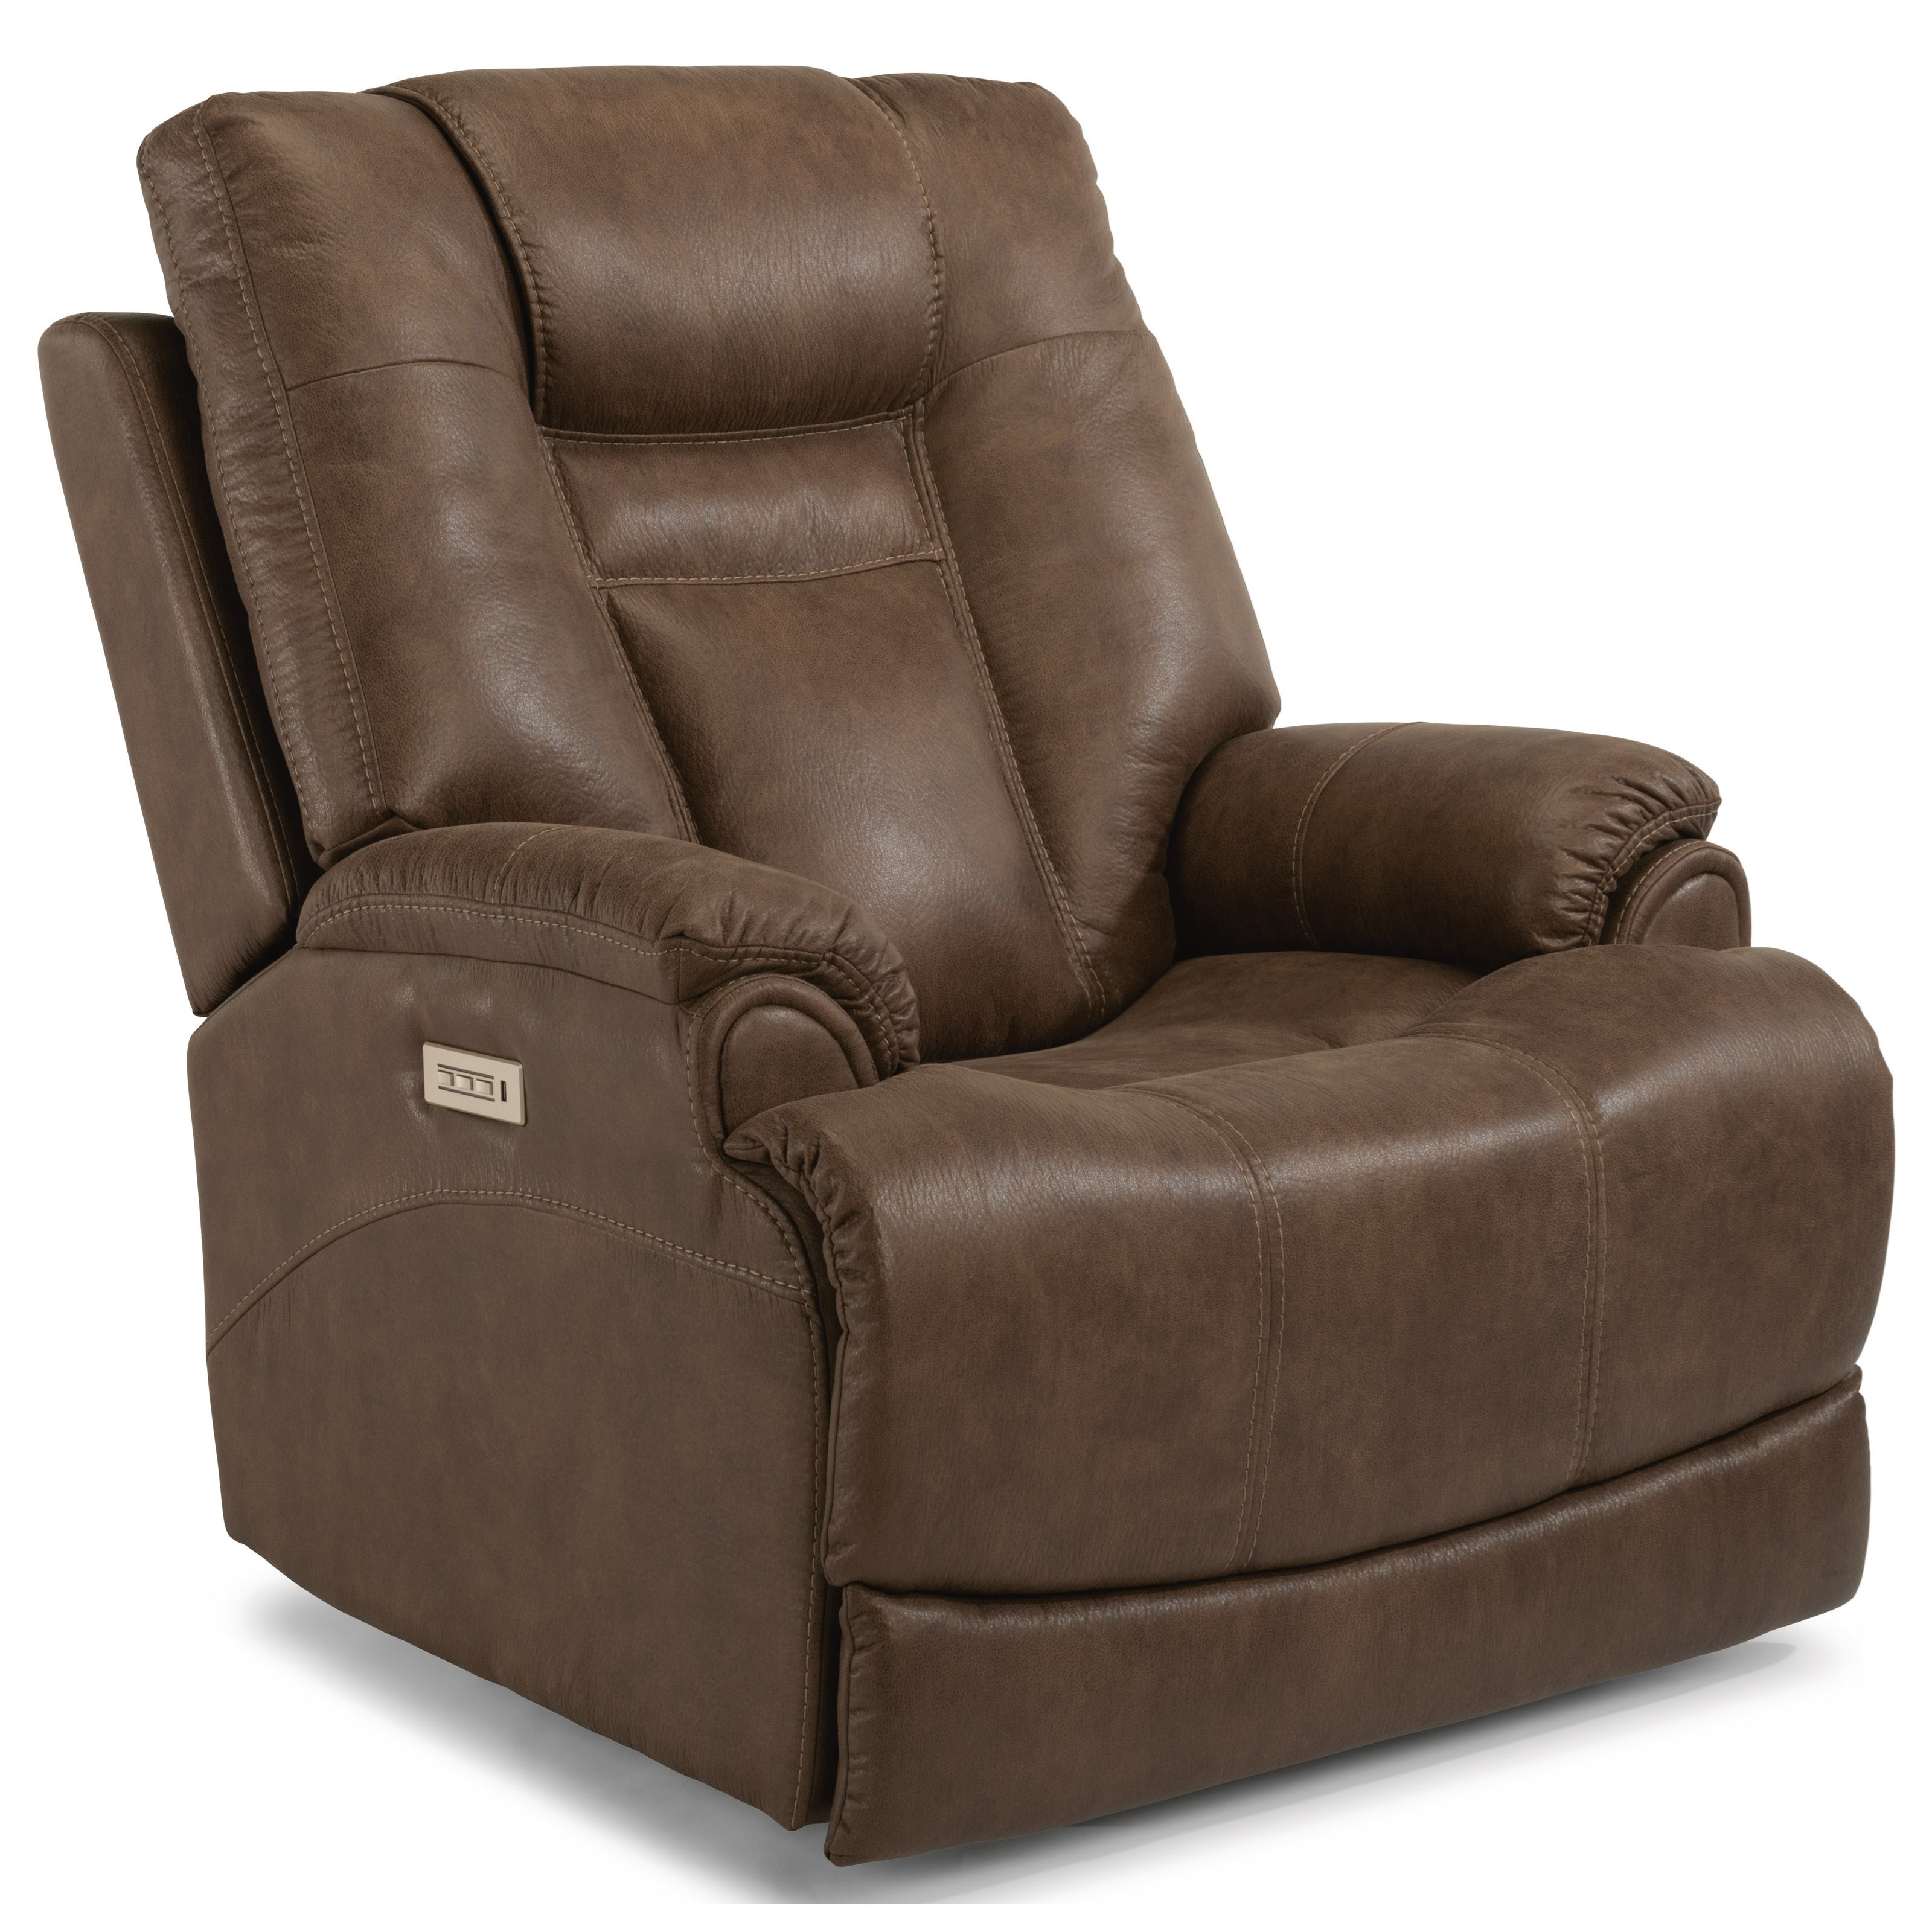 Marley Power Recliner with Power Headrest by Flexsteel at Miller Home